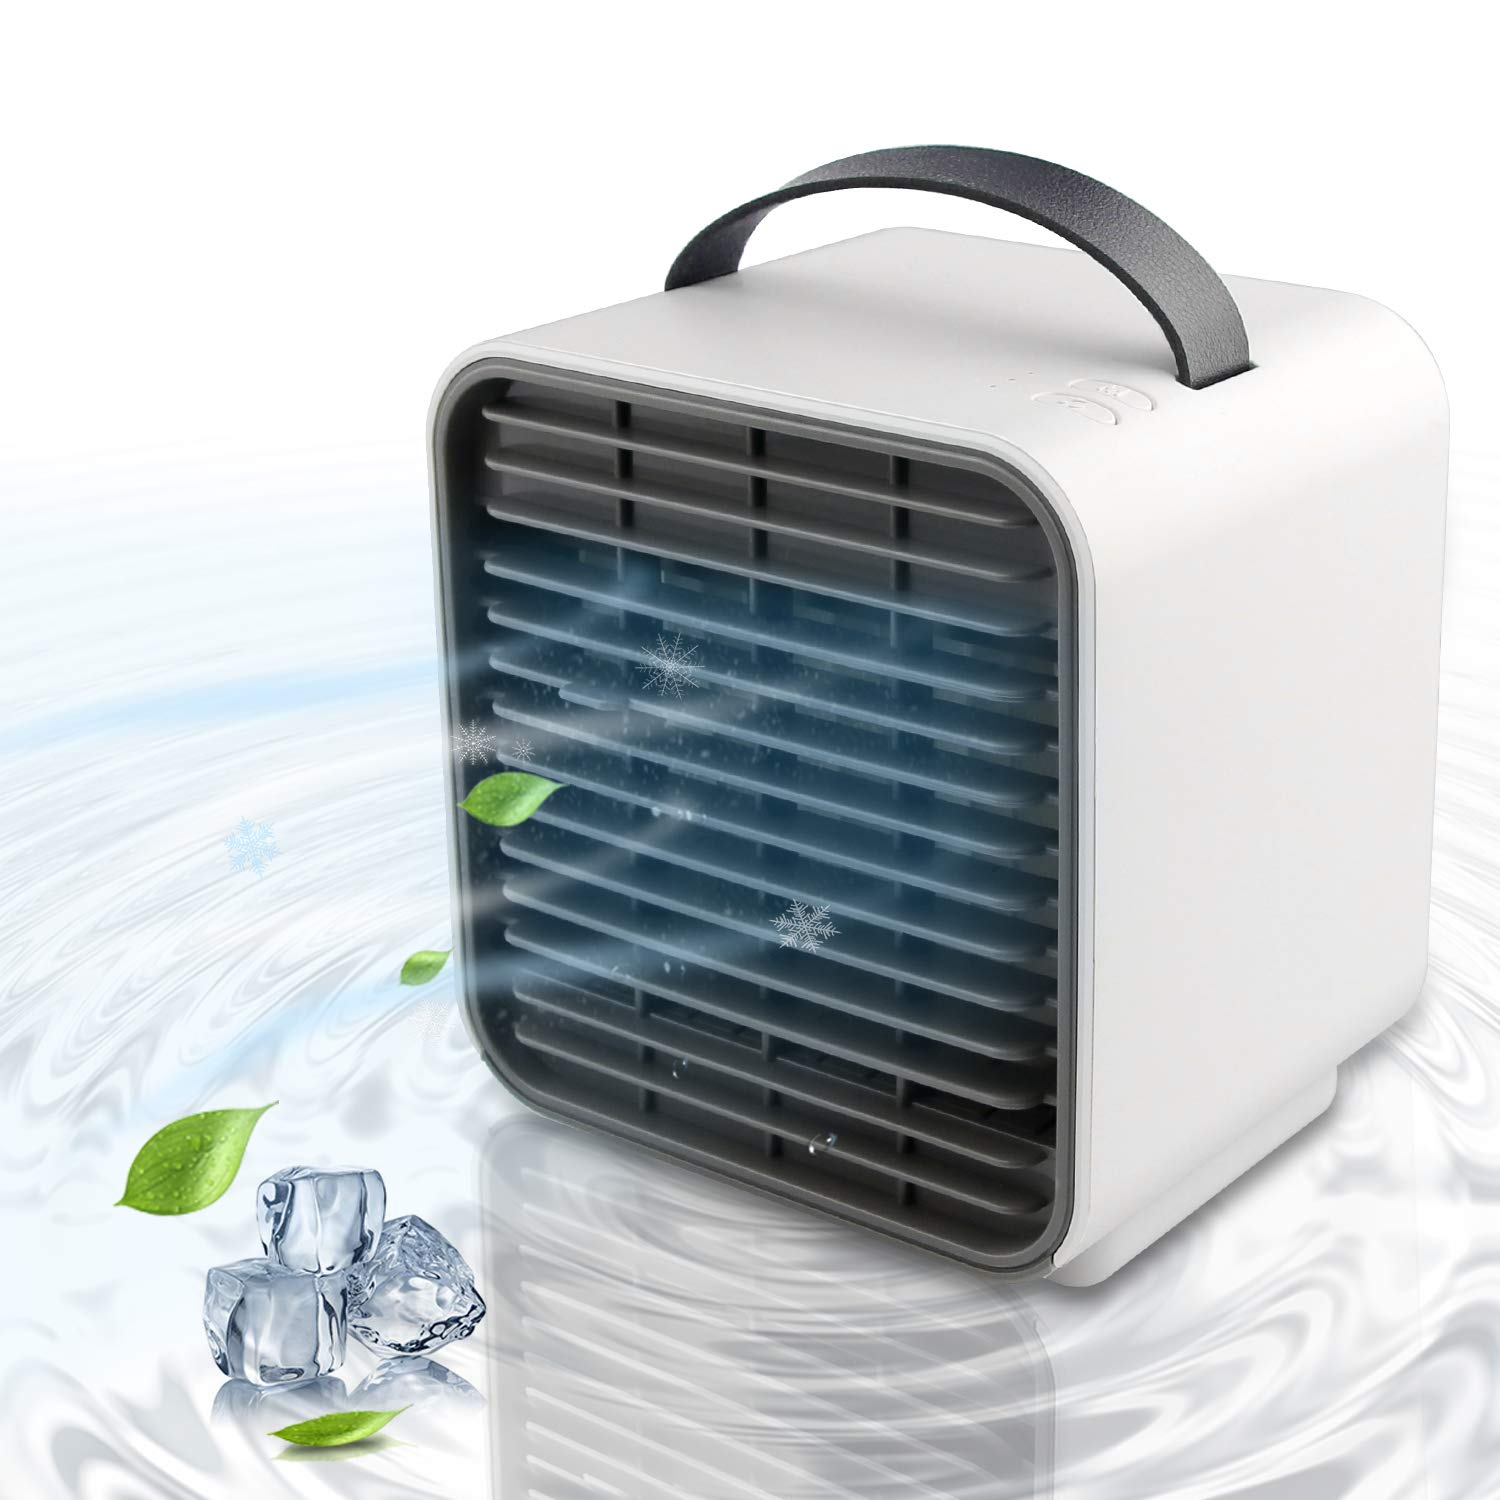 Bellaelegance Personal Space Cooler Portable Air Conditioner Cooling Fan Negative Ion Desktop Bedroom Fan Purifier Quiet Air Circulator Office Home Bedroom Fan with LED Light for Kids Adult (White)